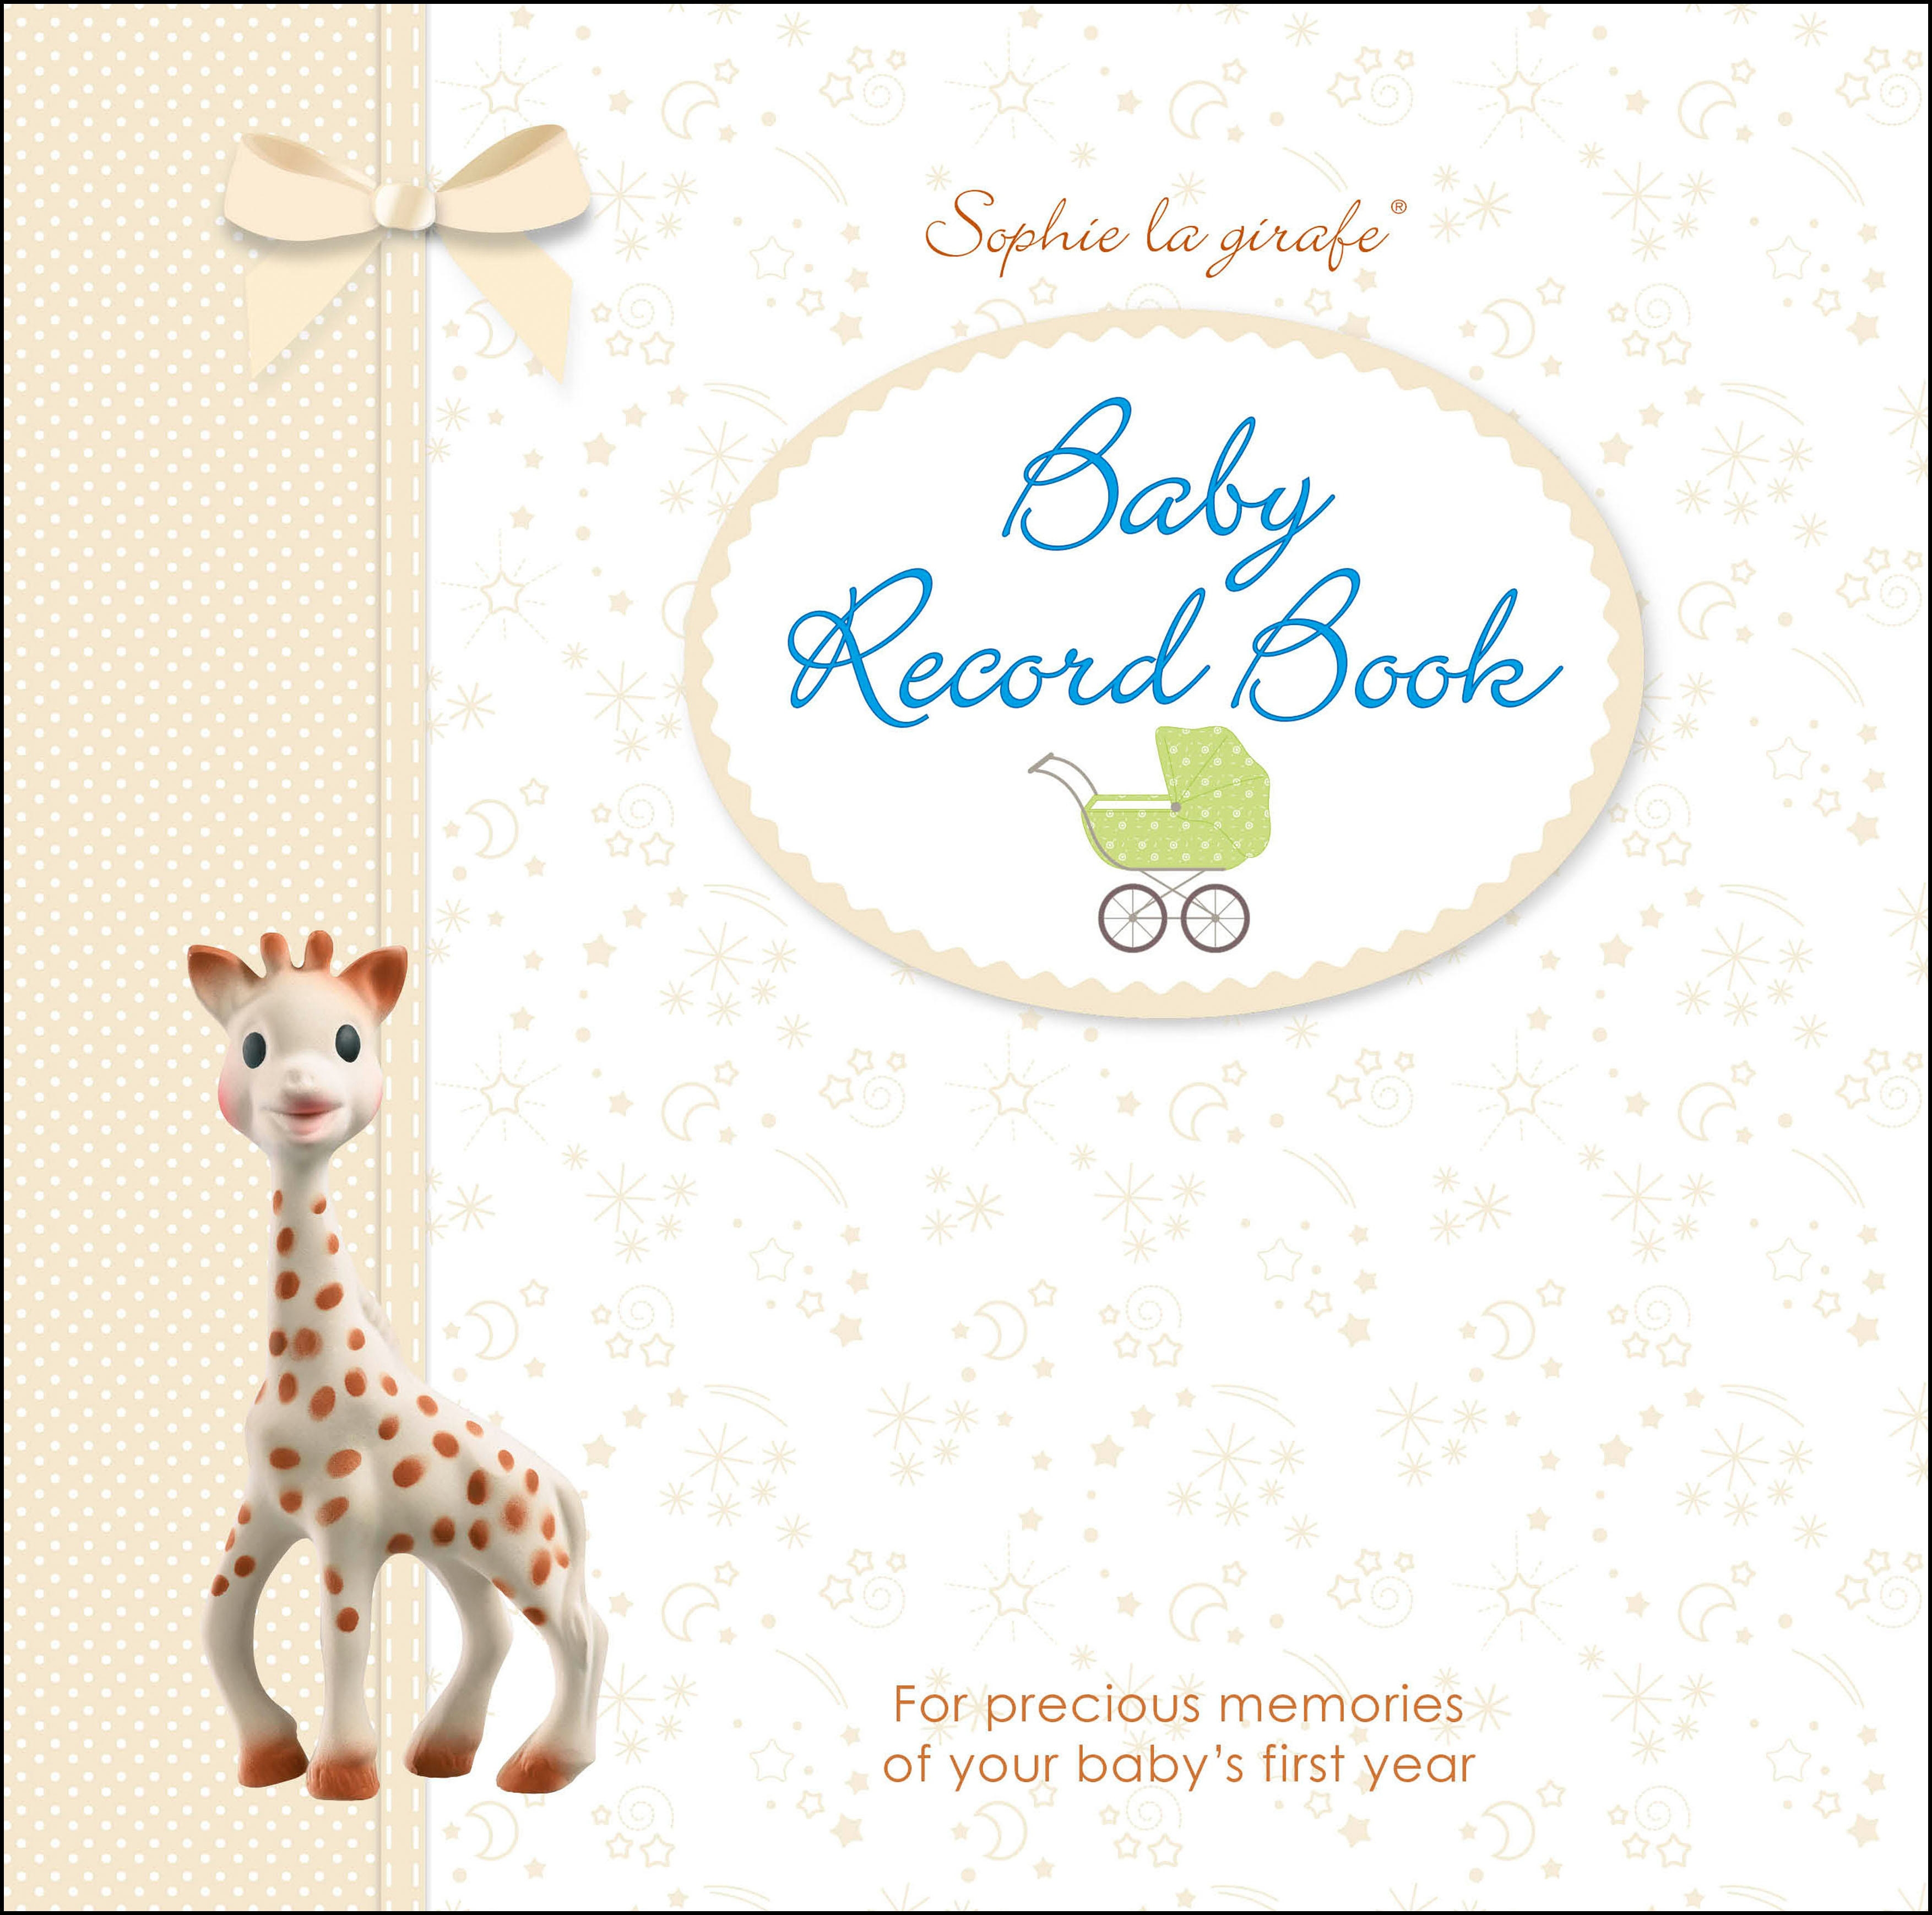 Sophie's Baby Record Book by Dorling Kindersley, ISBN: 9780241237663